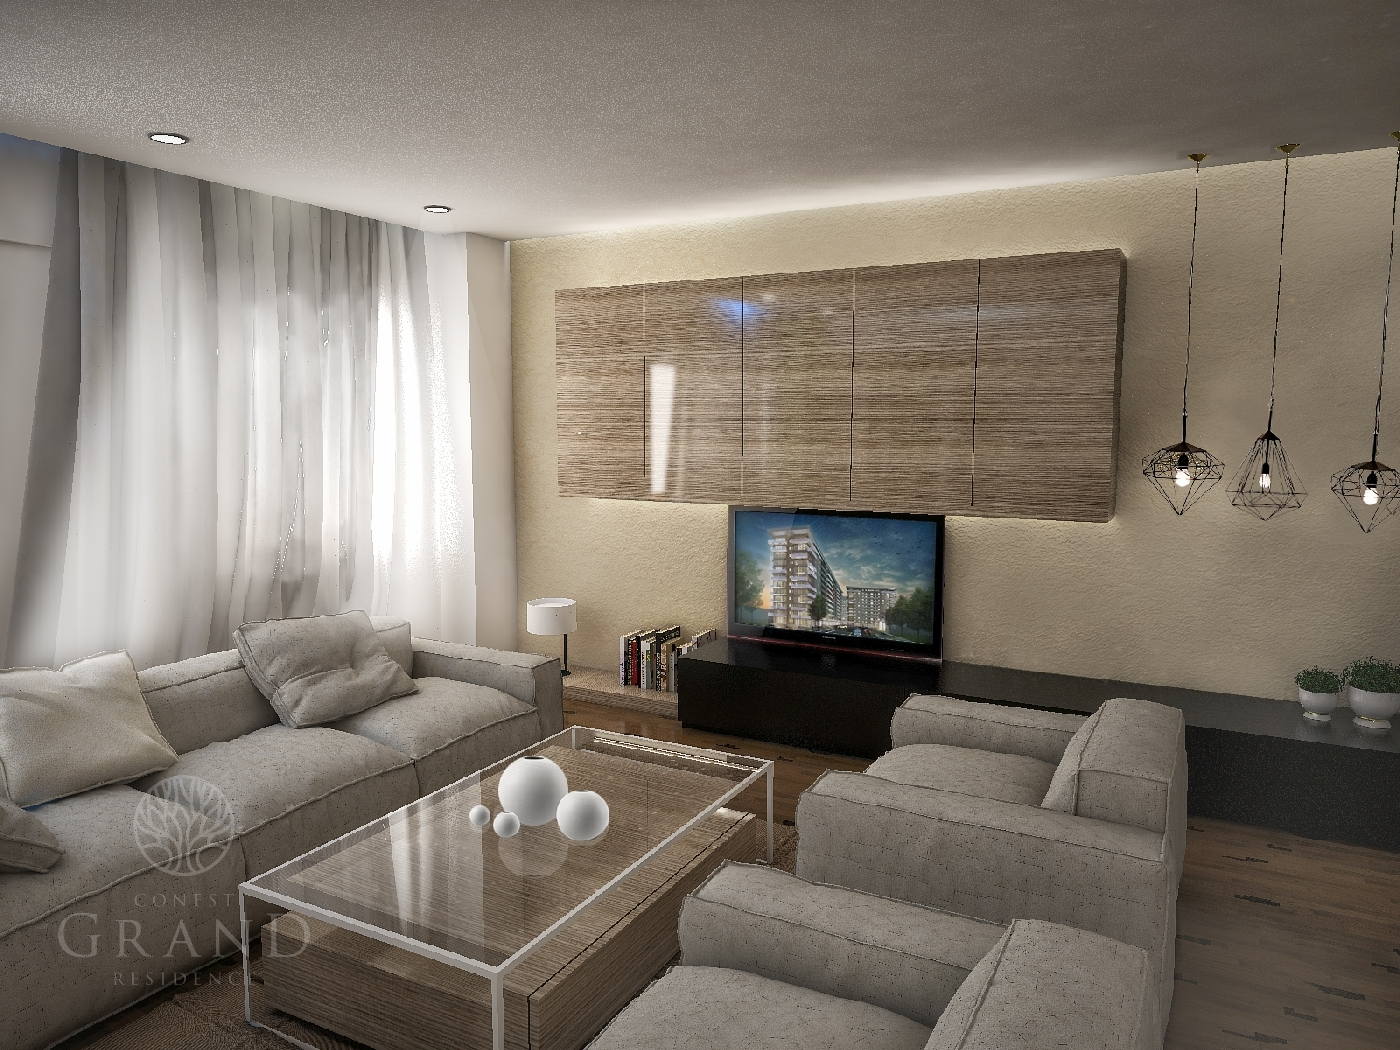 penthouse_conest_grand_residence_iasi_009